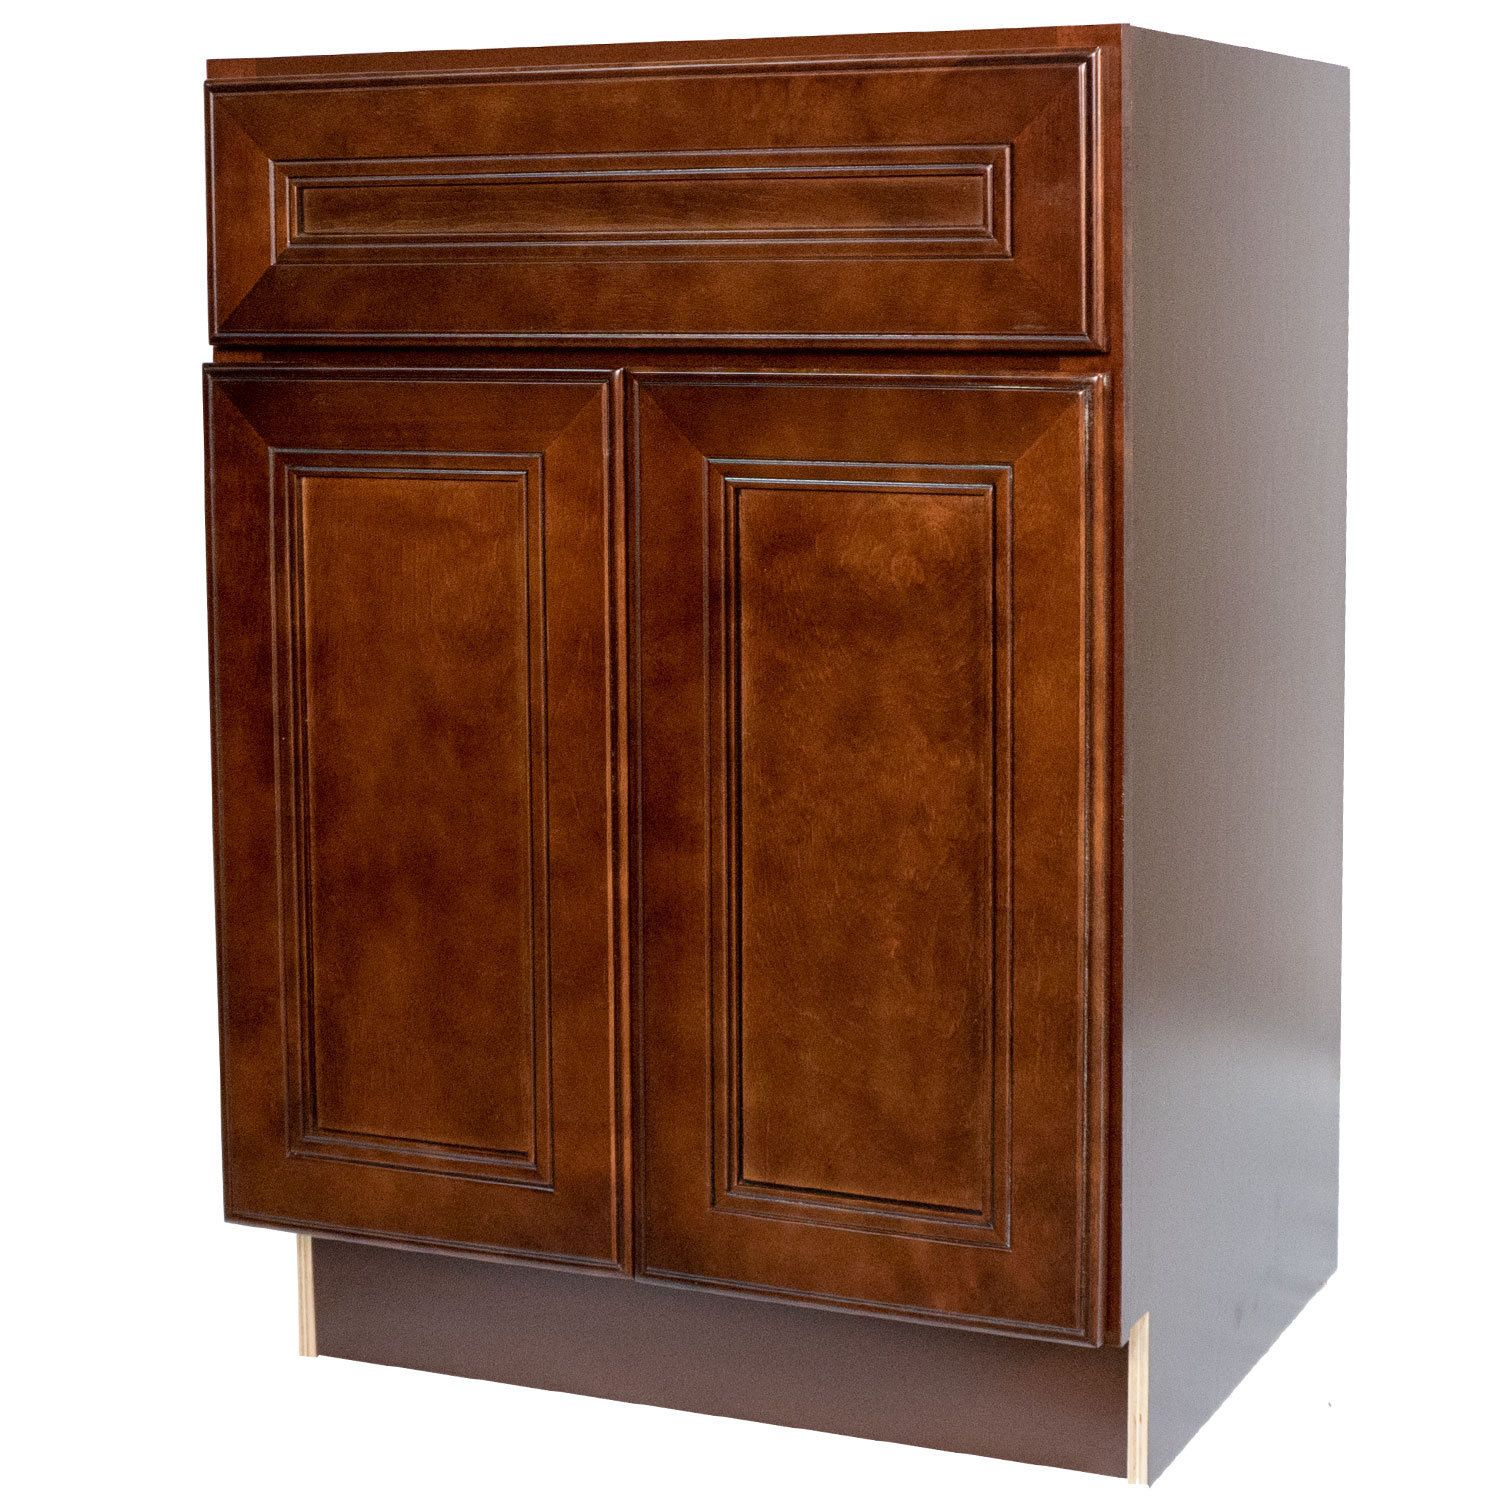 Everyday Cabinets 27 Inch Cherry Mahogany Brown Leo Saddle Base